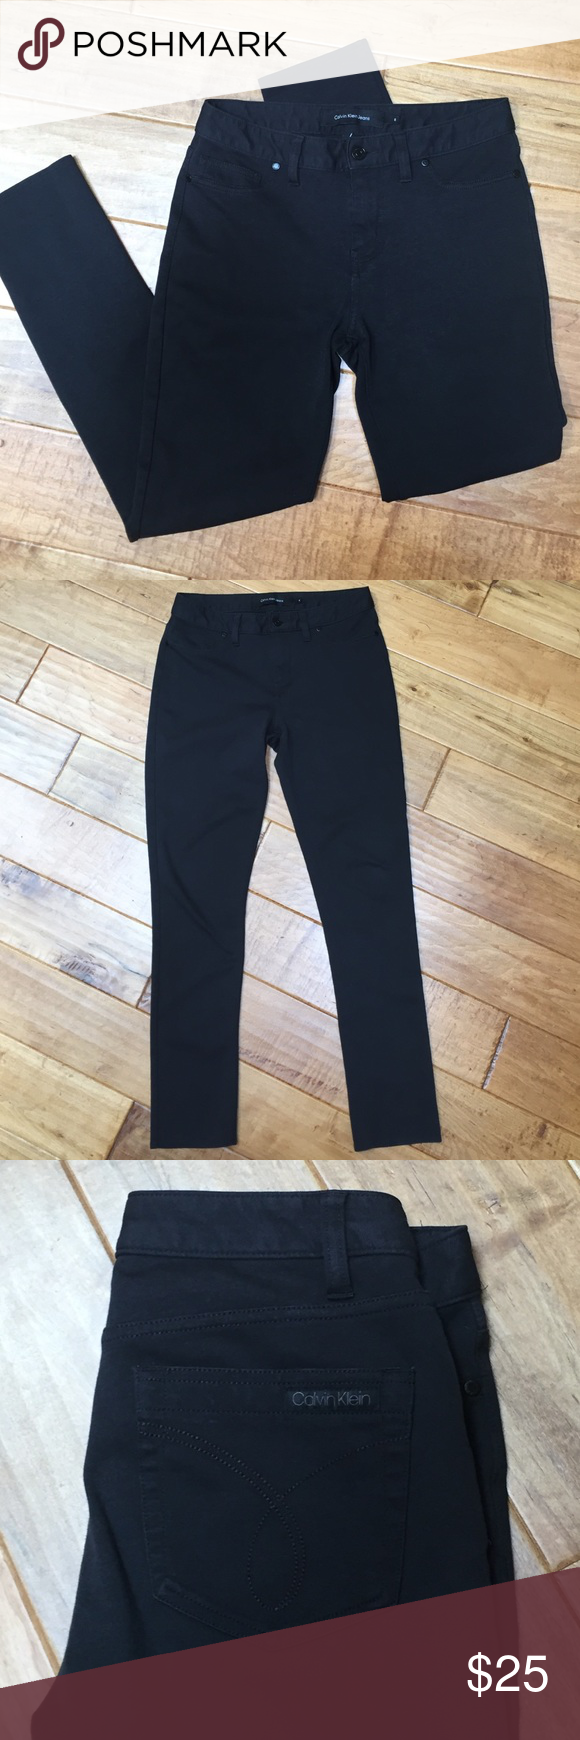 """Calvin Klein black jeggings This is a pair of black Calvin Klein jeggings in gently worn condition with no holes or stains. Size 6. The inseam is 28.5"""". Calvin Klein Pants Leggings"""